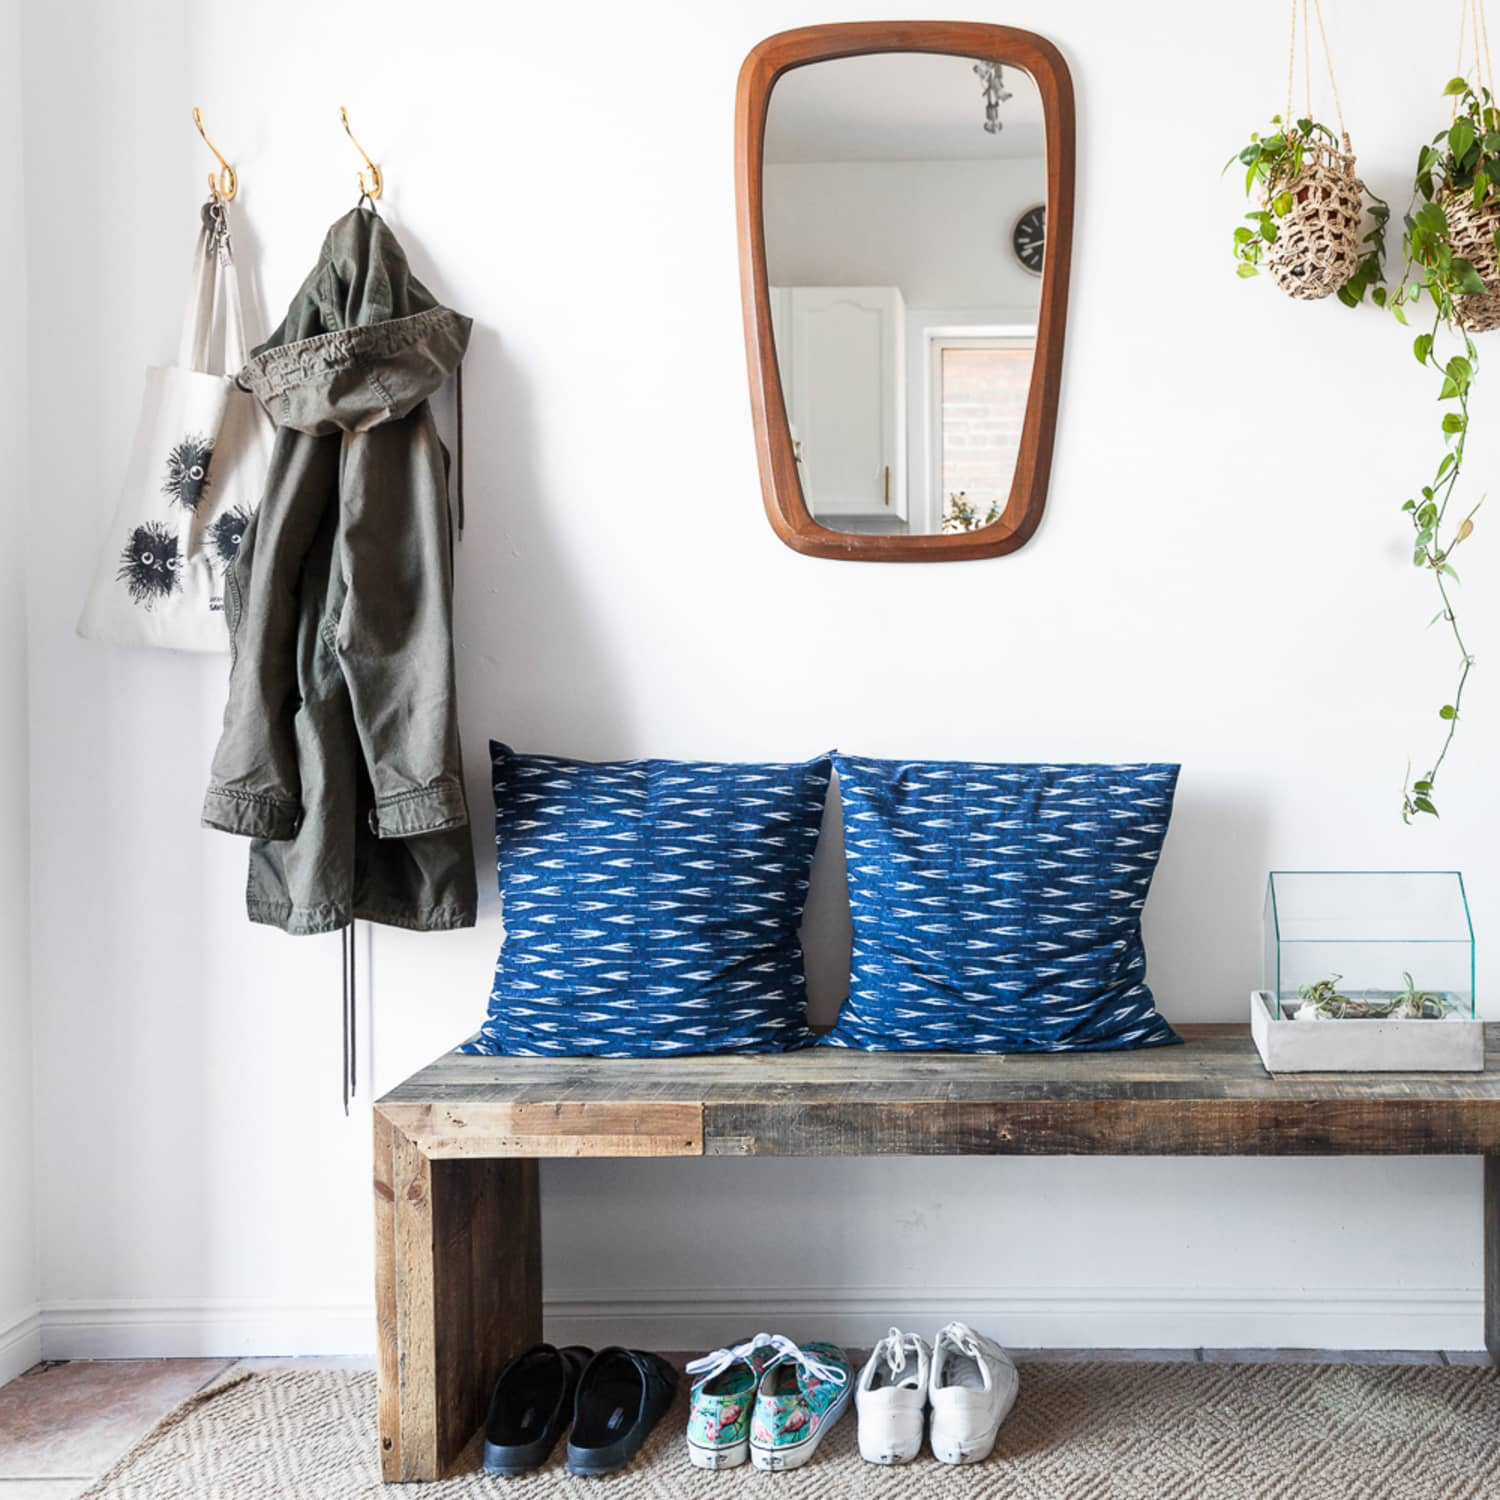 Small Space Entryway Ideas - How to Design a Tiny Entry ...